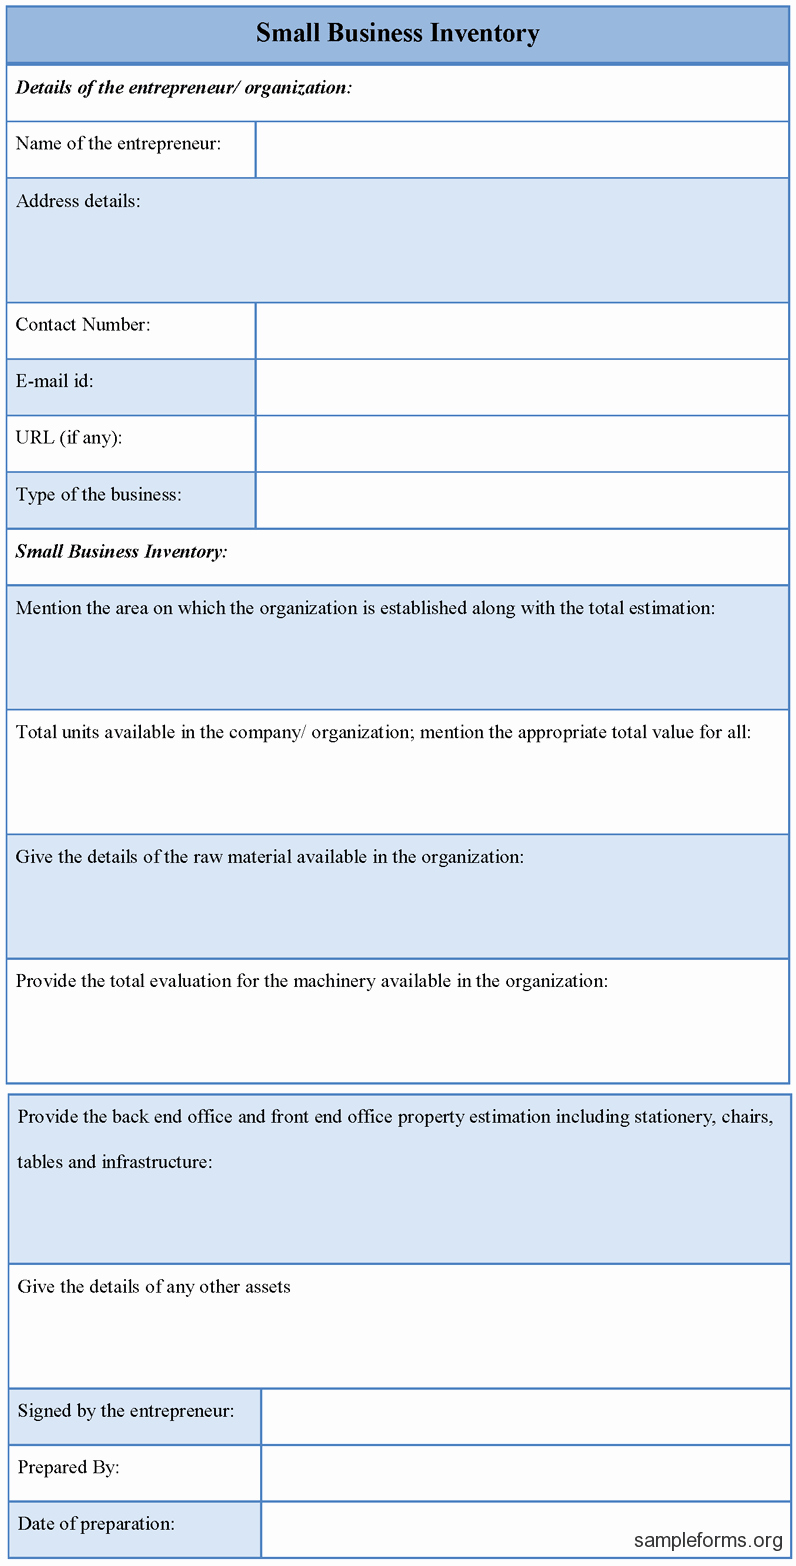 Inventory Sheets for Small Business Unique Small Business Inventory form Sample forms